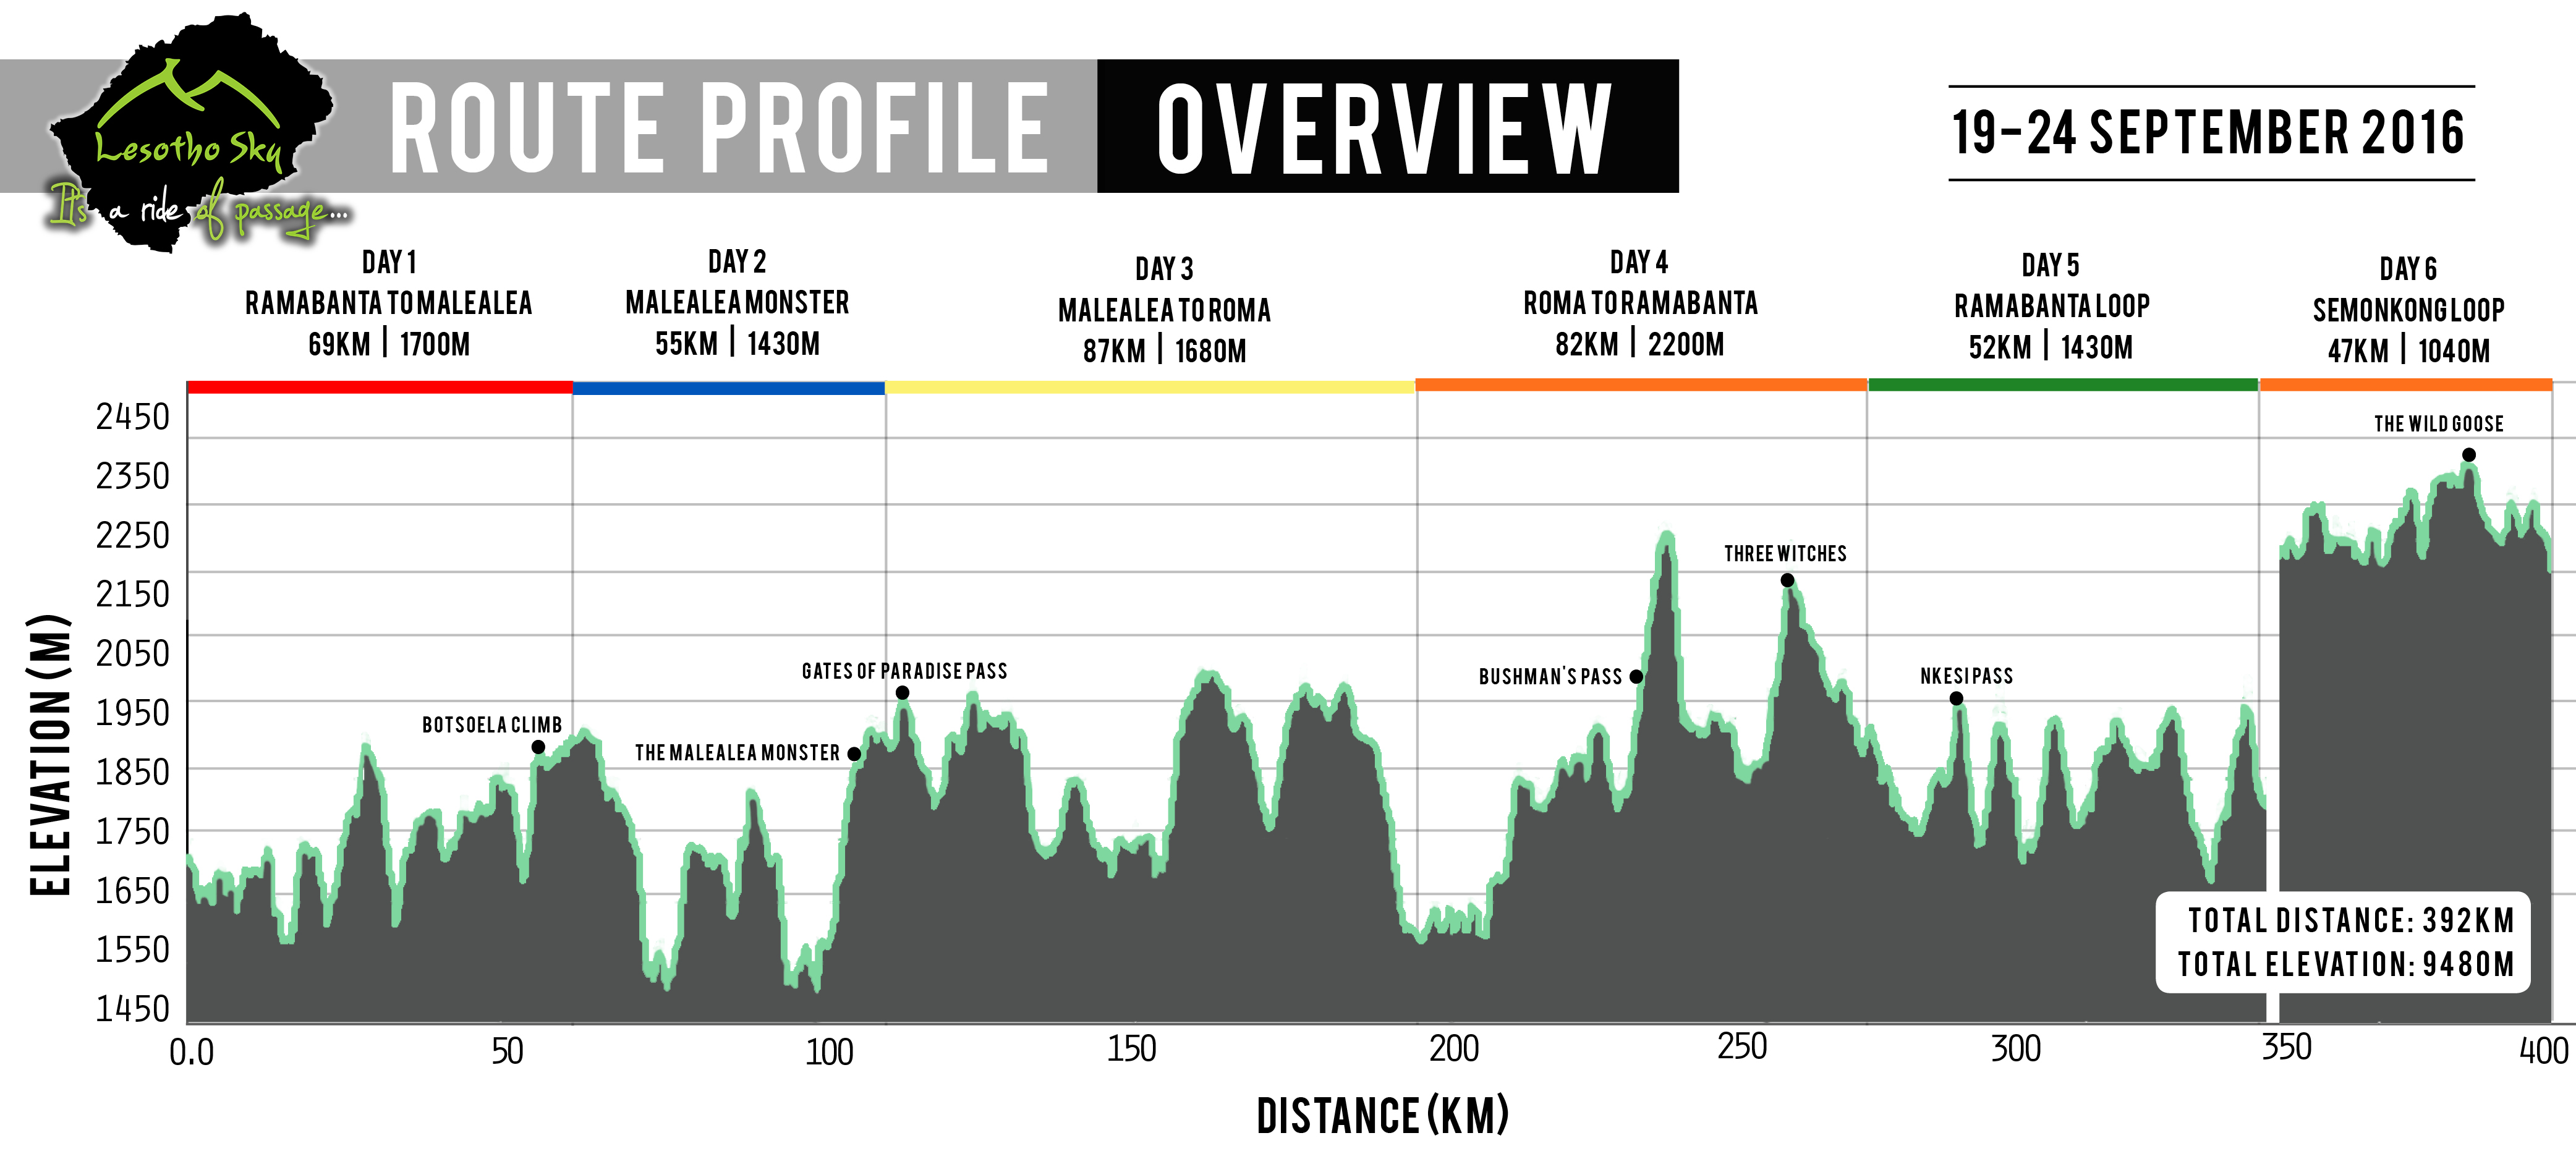 Route profile overview_final